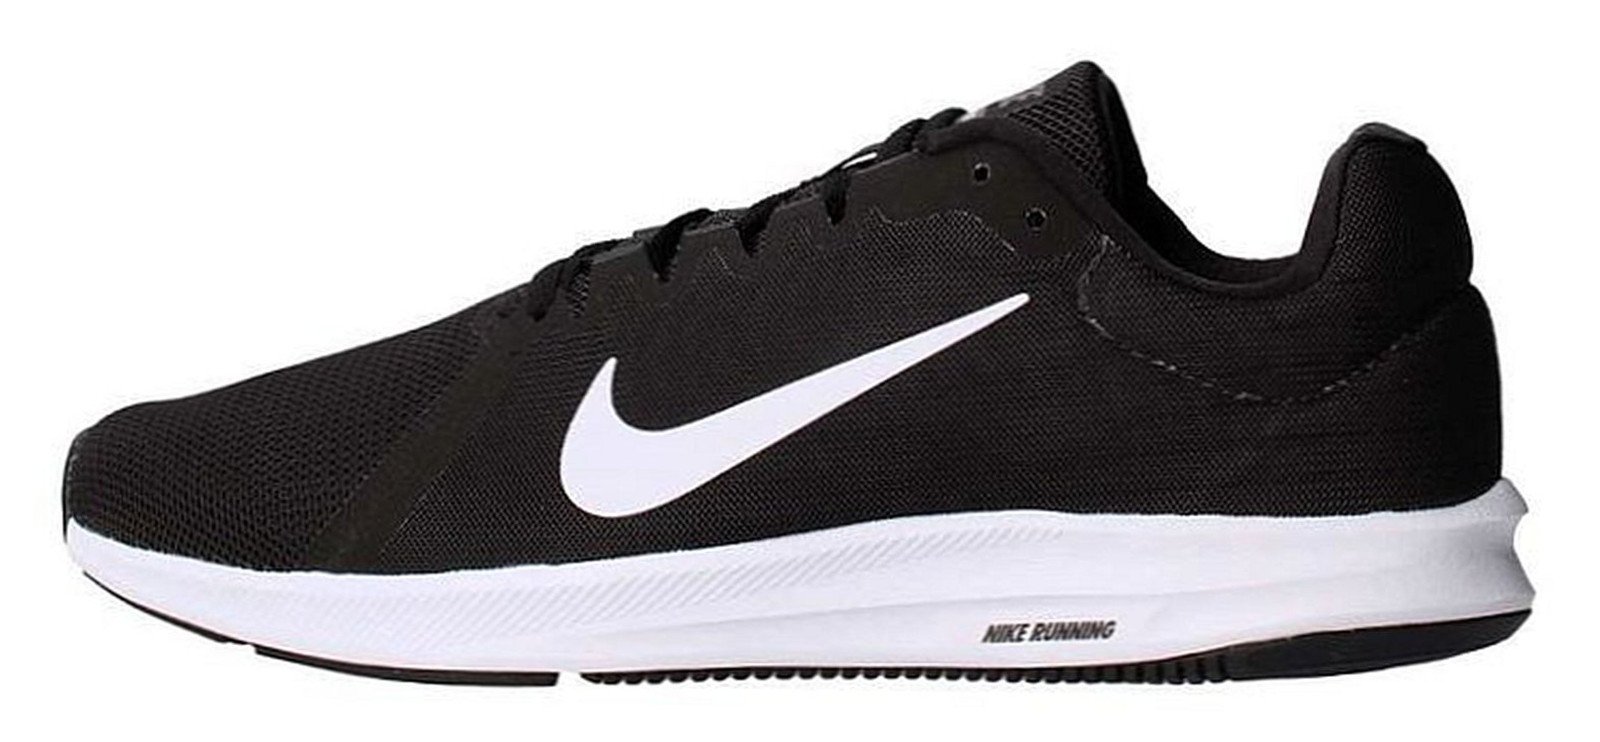 detailed look 67868 9fd73 Chaussure de course Nike homme NIKE DOWNSHIFTERS 8 noir blanc